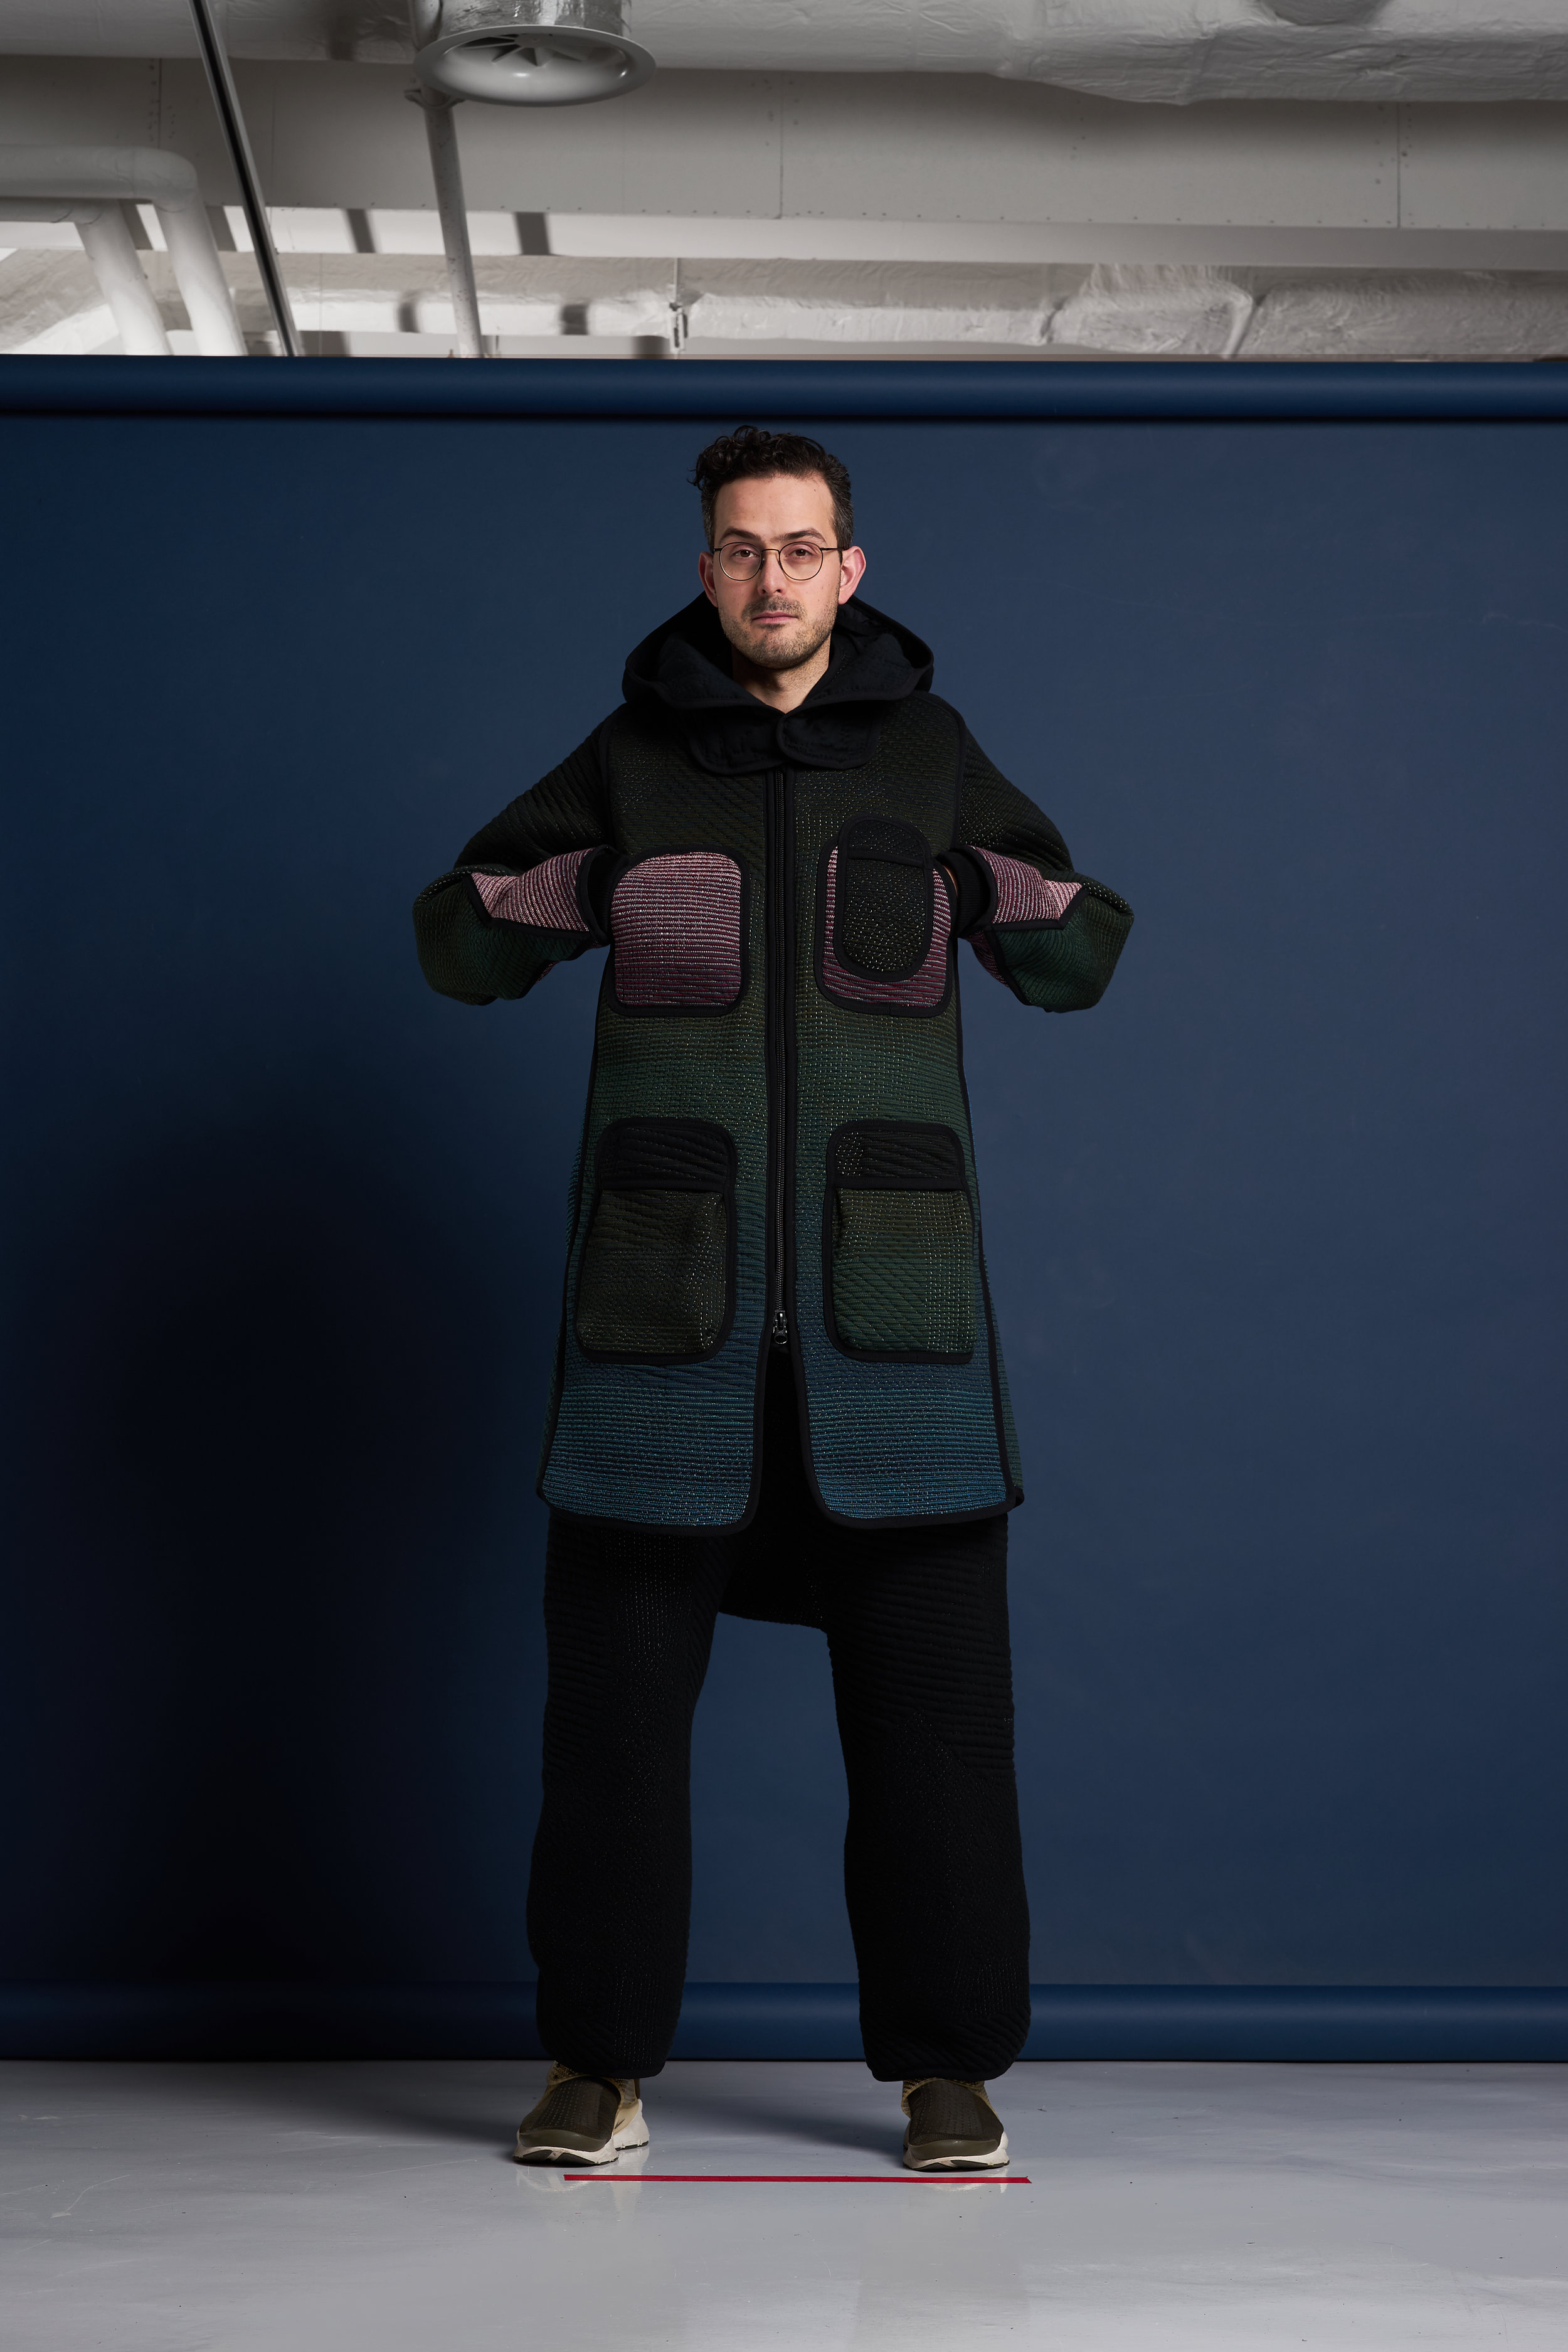 294003-BB_AW18_MultiColorParkaFront_photocredit_Tomek_Dersu_Aaron-003782-original-1540300690.jpg